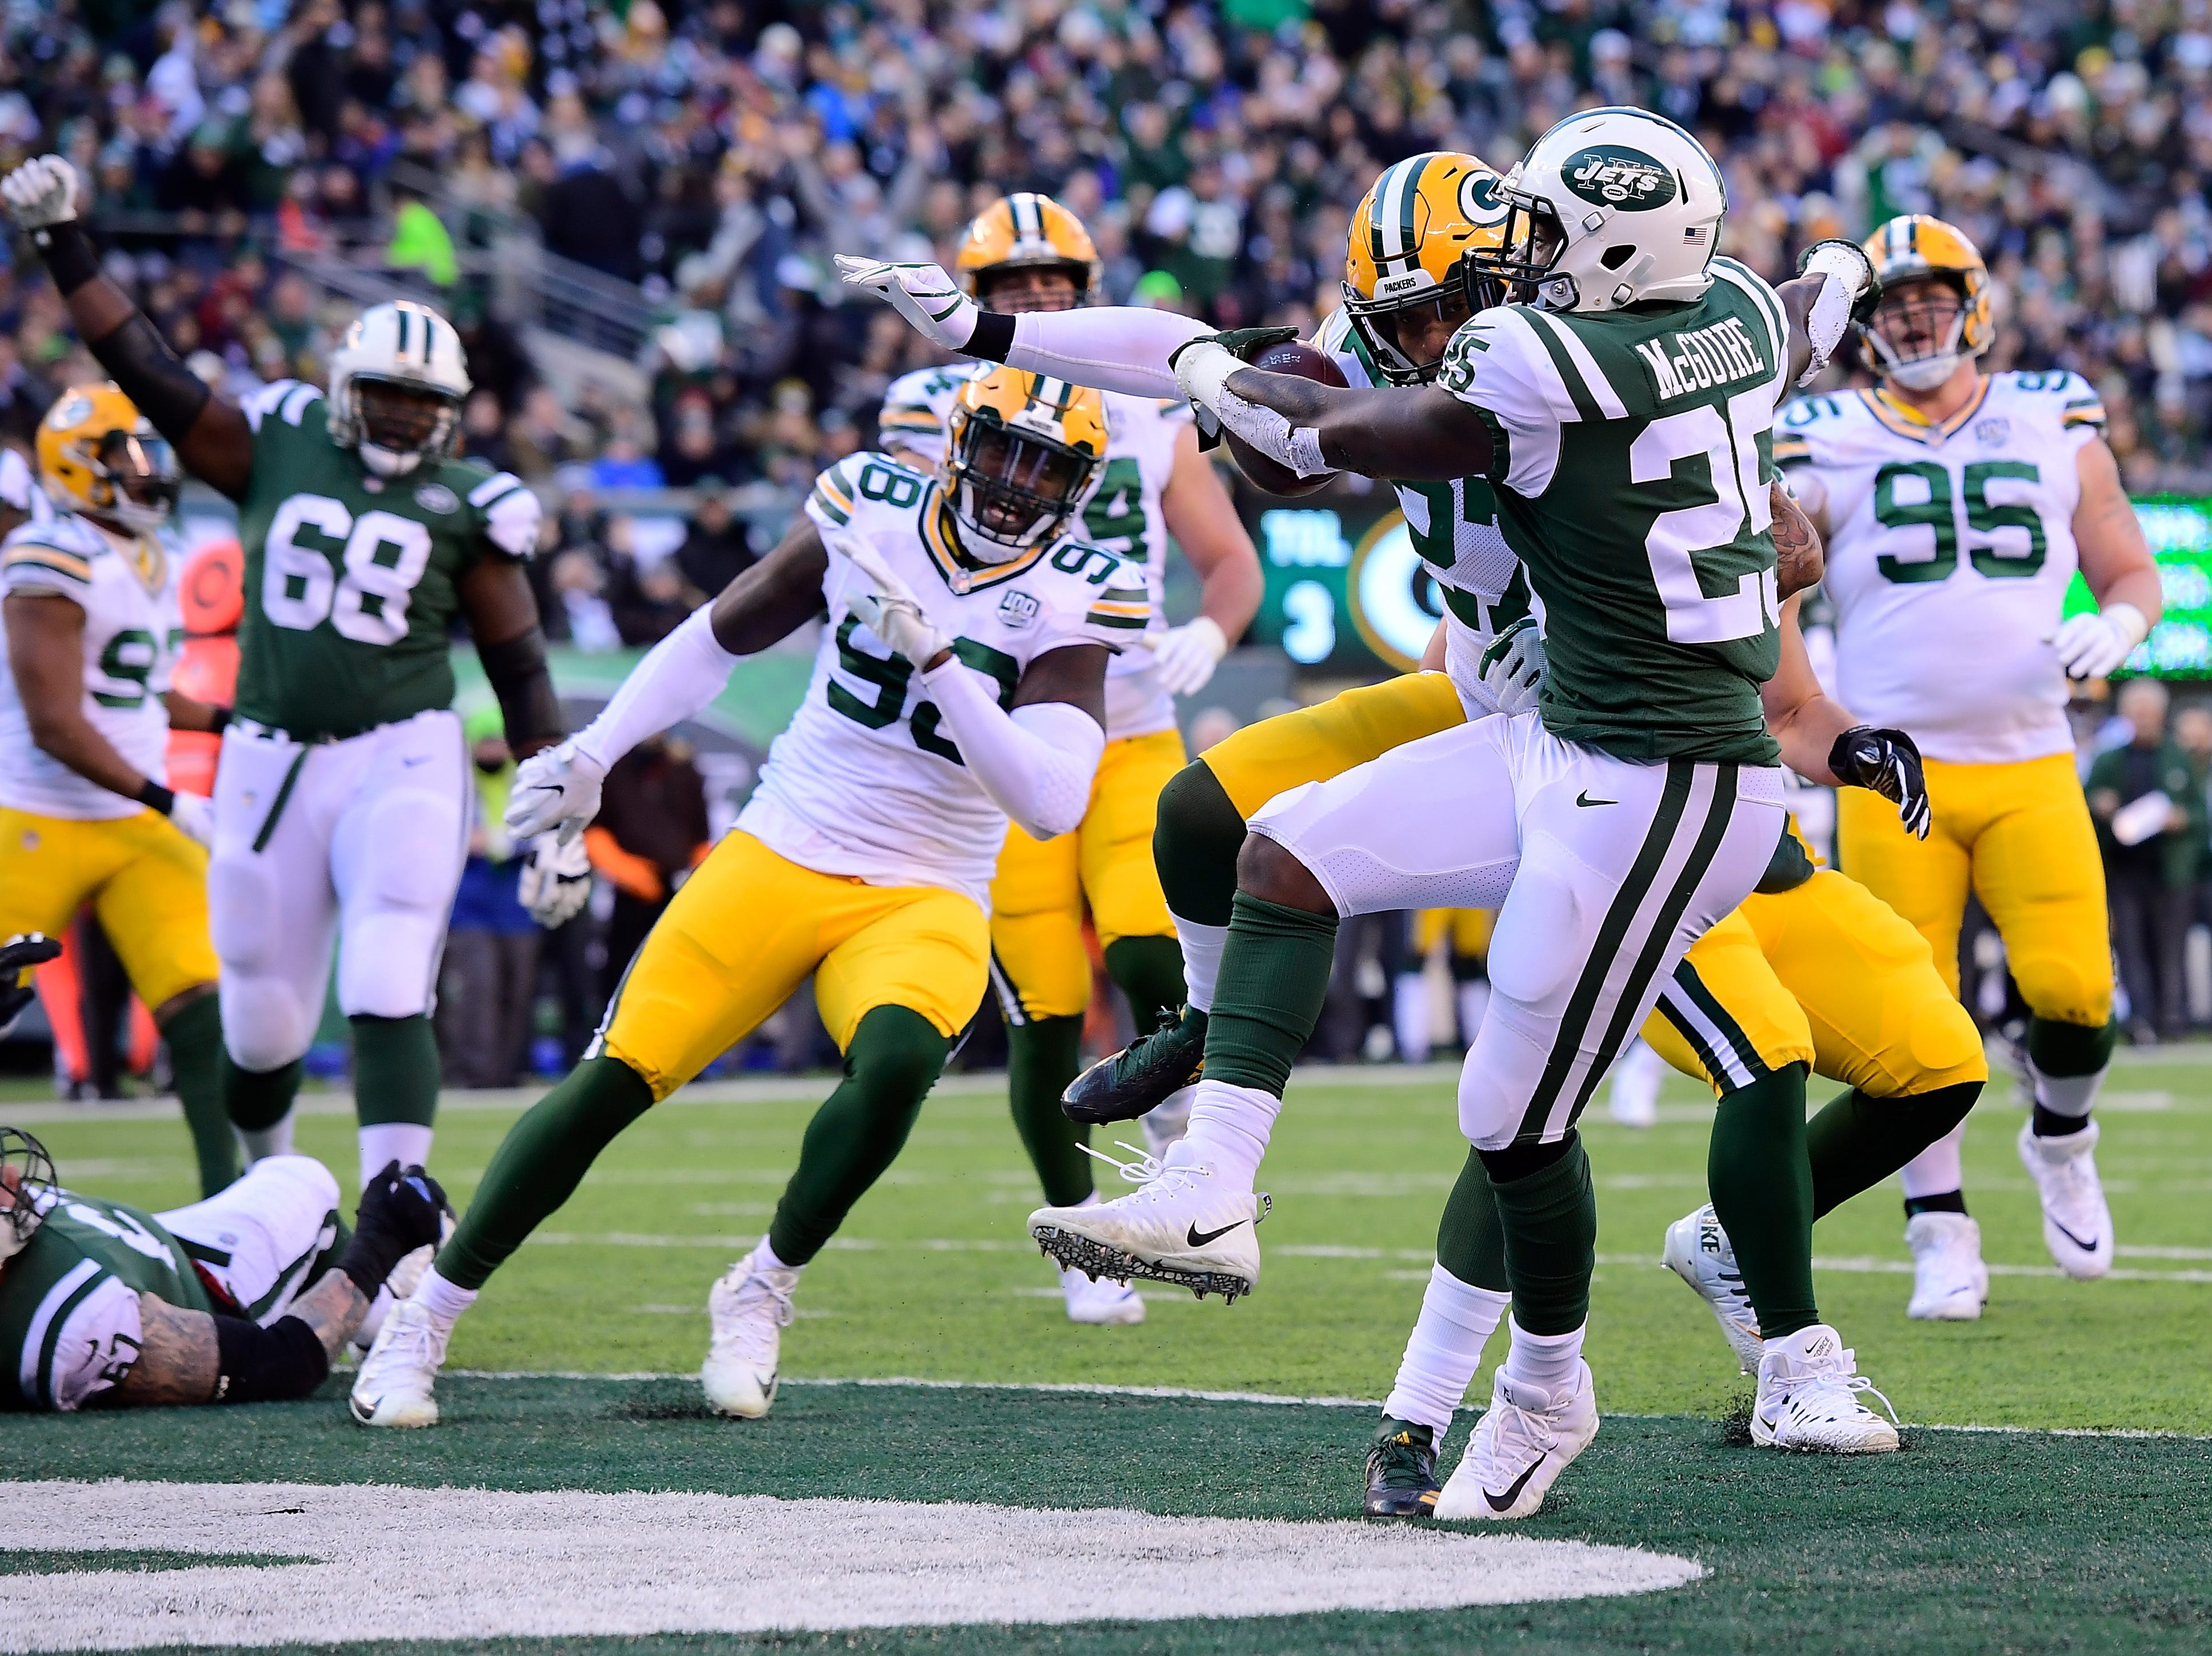 Elijah McGuire #25 of the New York Jets rushes four yards for a touchdown against the Green Bay Packers during the first quarter at MetLife Stadium on December 23, 2018 in East Rutherford, New Jersey.  (Photo by Steven Ryan/Getty Images)